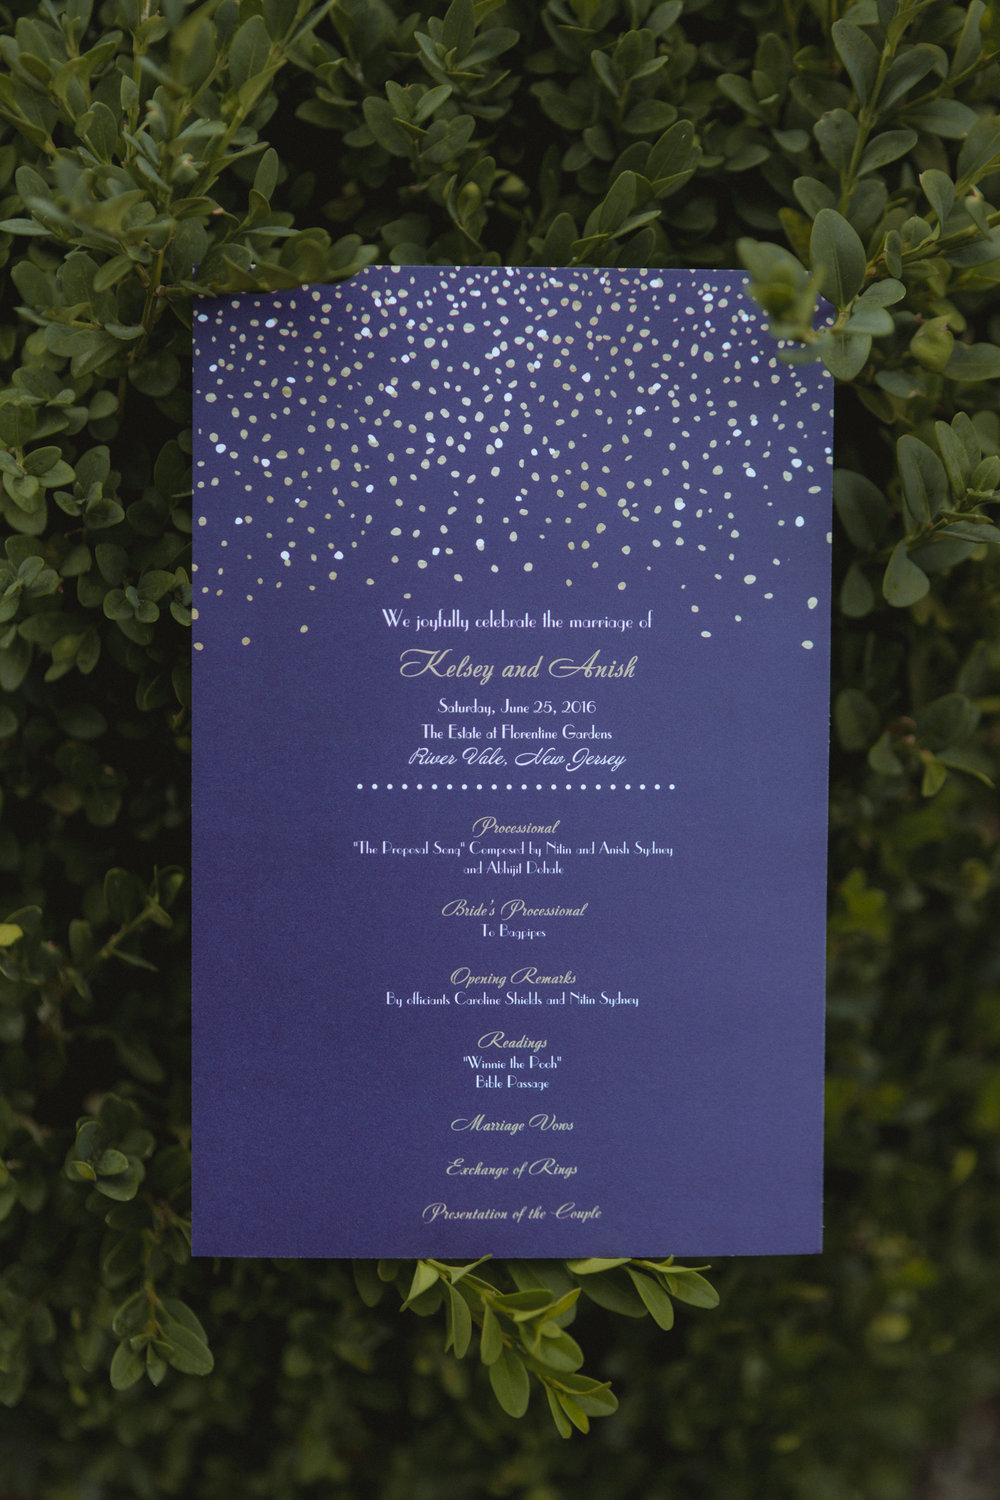 Detail photo of purple wedding program - Estate at Florentine Gardens wedding - Hudson Valley Wedding - Kelsey & Anish's wedding - Amy Sims Photography